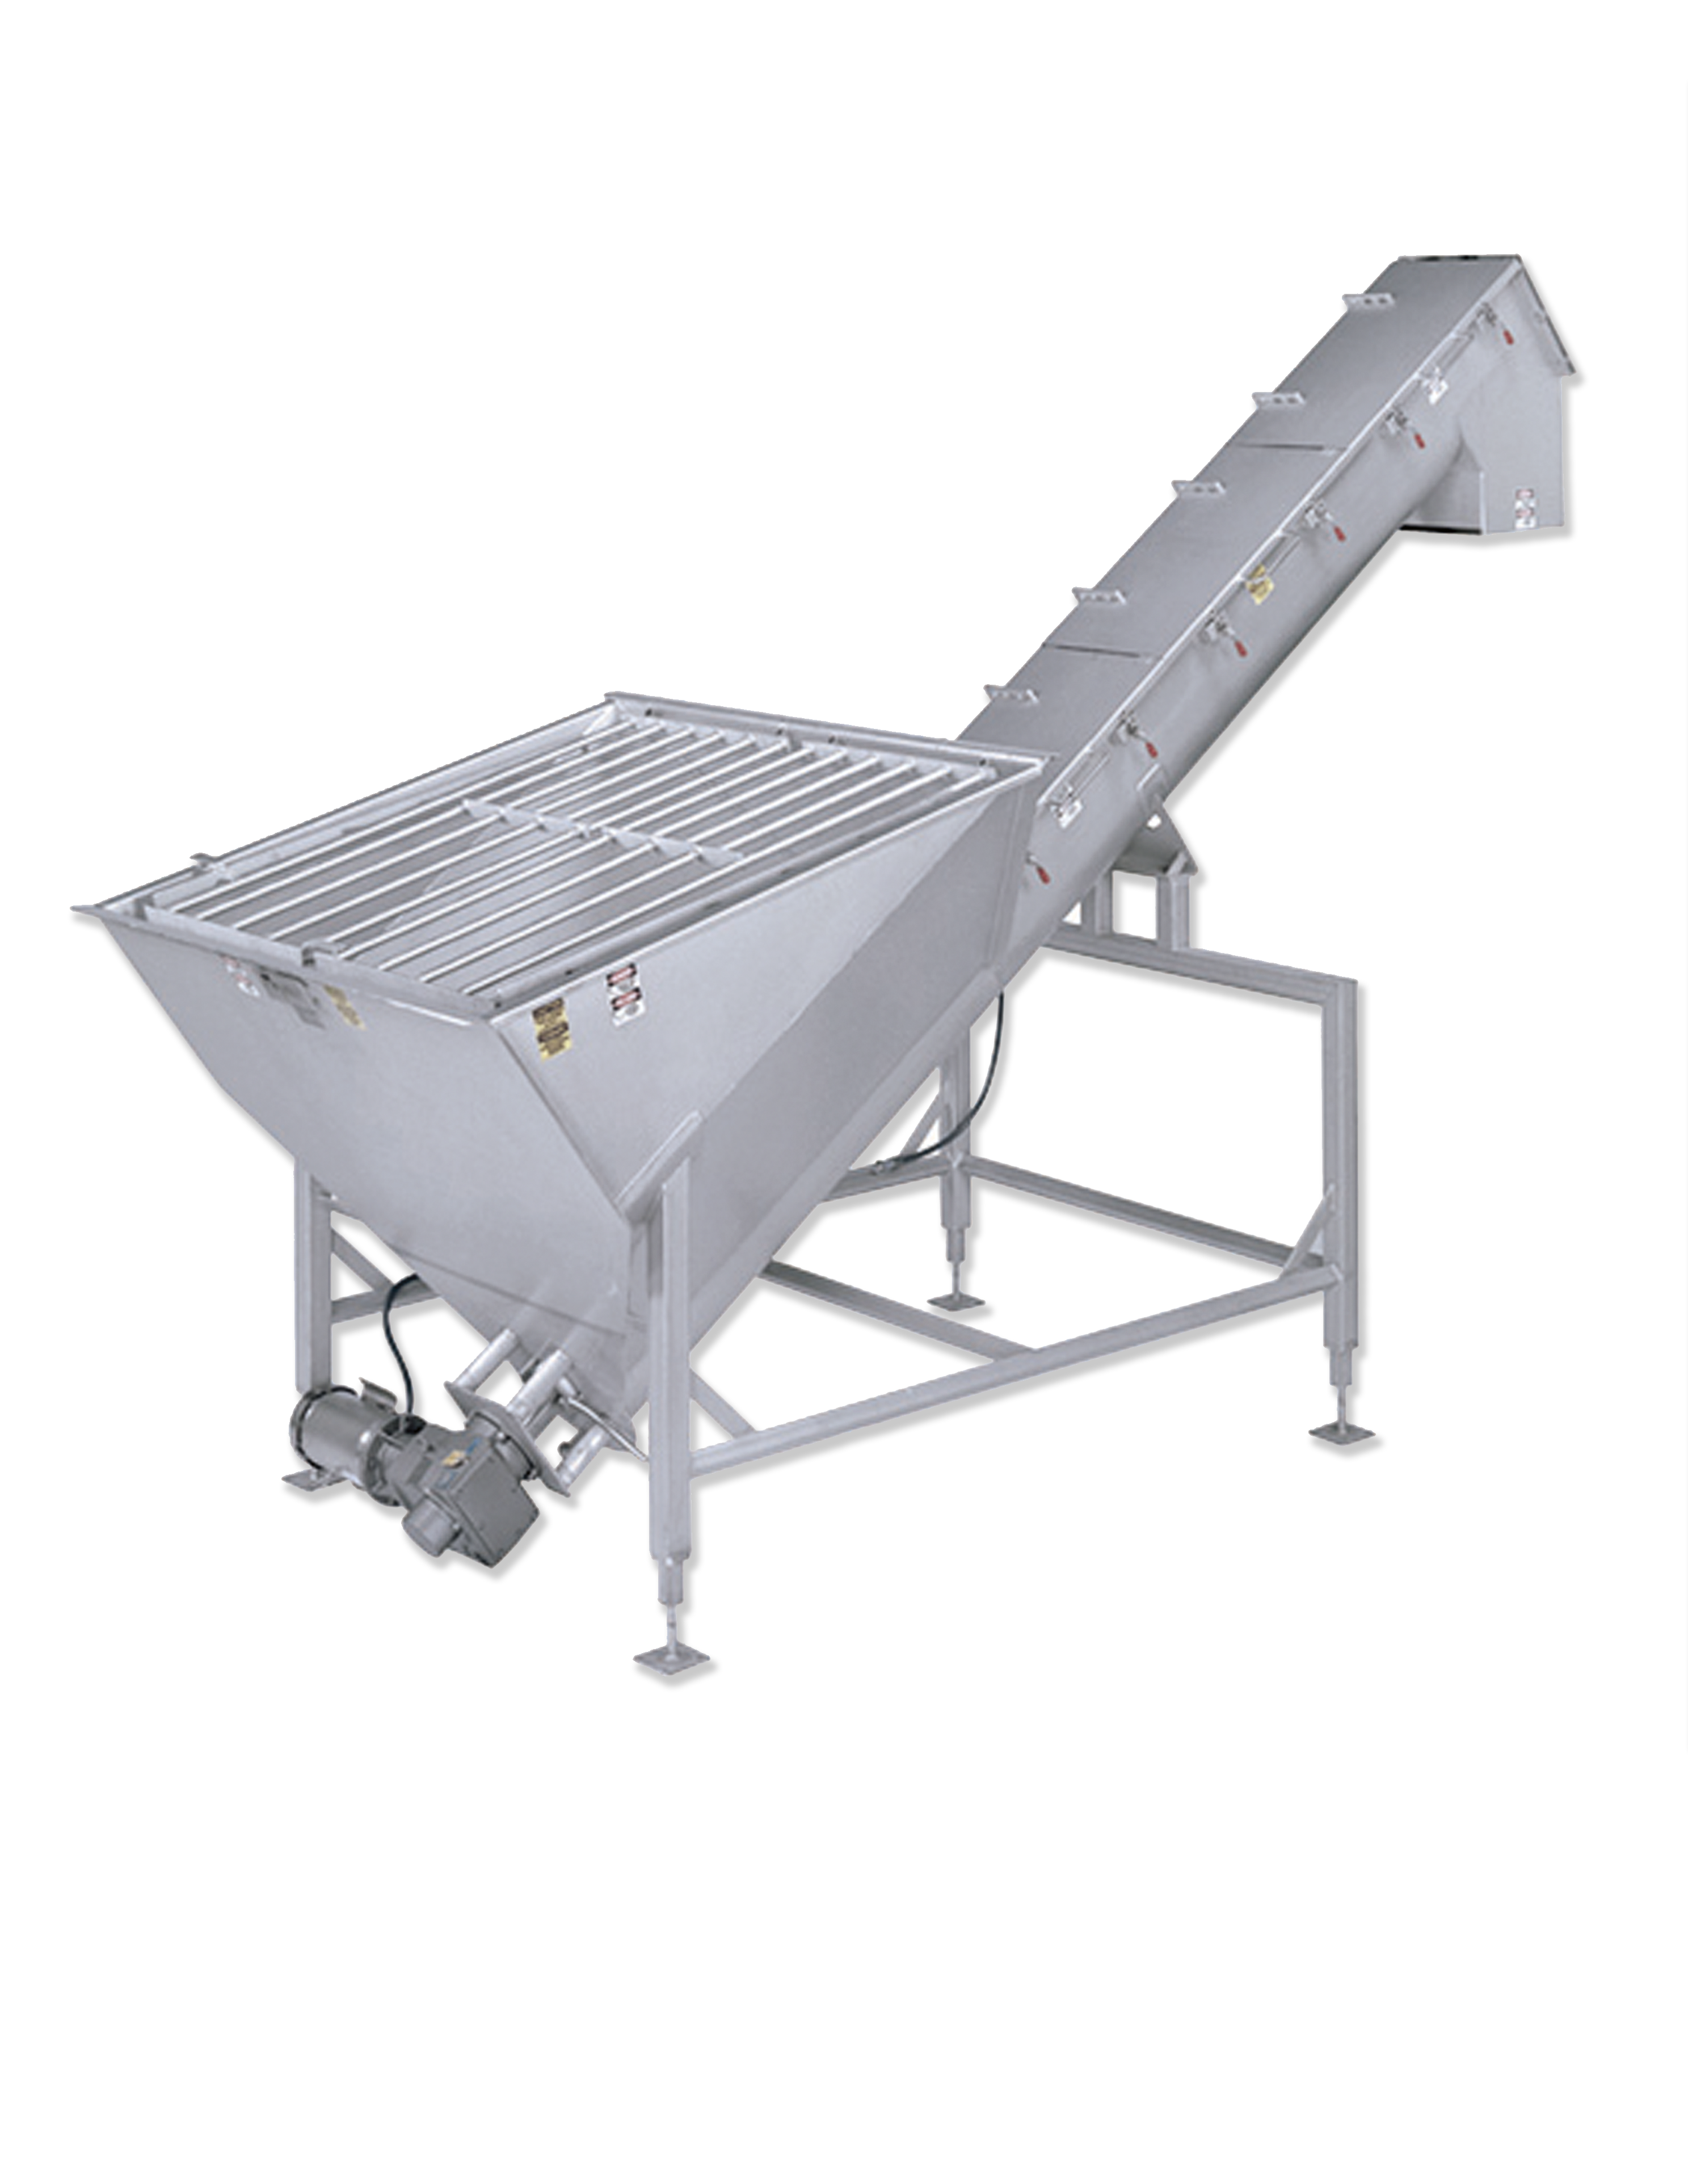 screw conveyor Lsy screw conveyor is special equipment that is in sealed circular section shell and continuous transport material via rotary palladium it is used to transport a variety of meal, granular material, small block material, such as cement, fly ash and ore fines, etc aimix lsy screw conveyor has features of compact form, small cross-sectional area, .